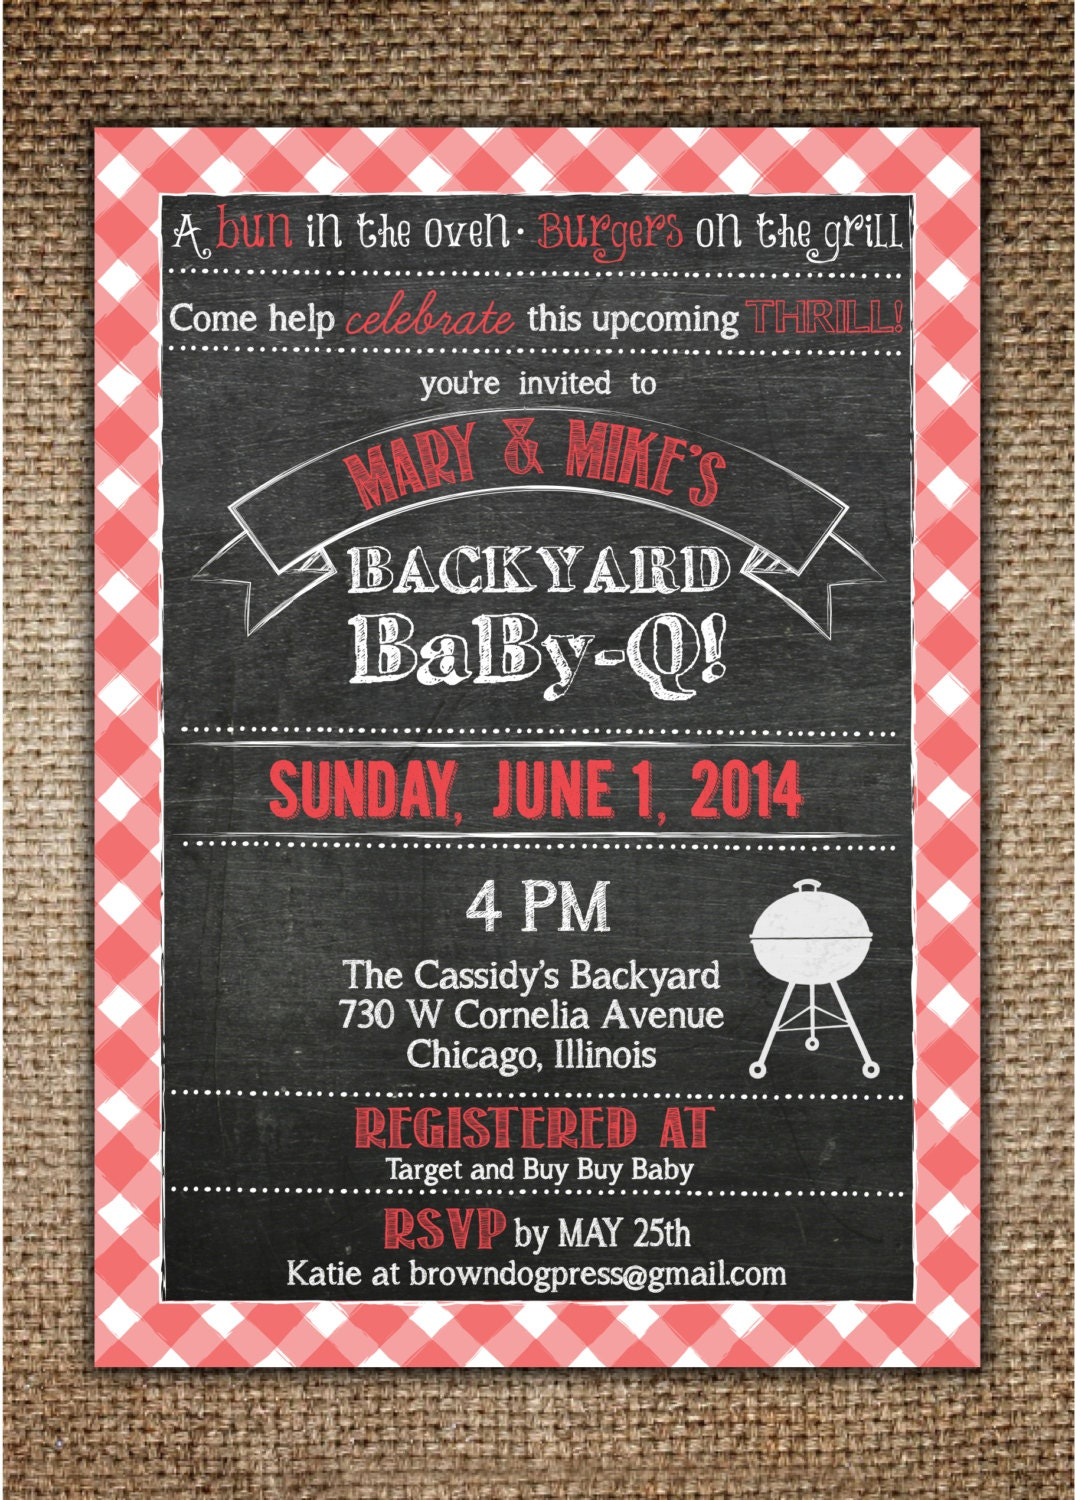 Baby Shower Invitation : Baby BBQ Backyard BaBy-Q with Red